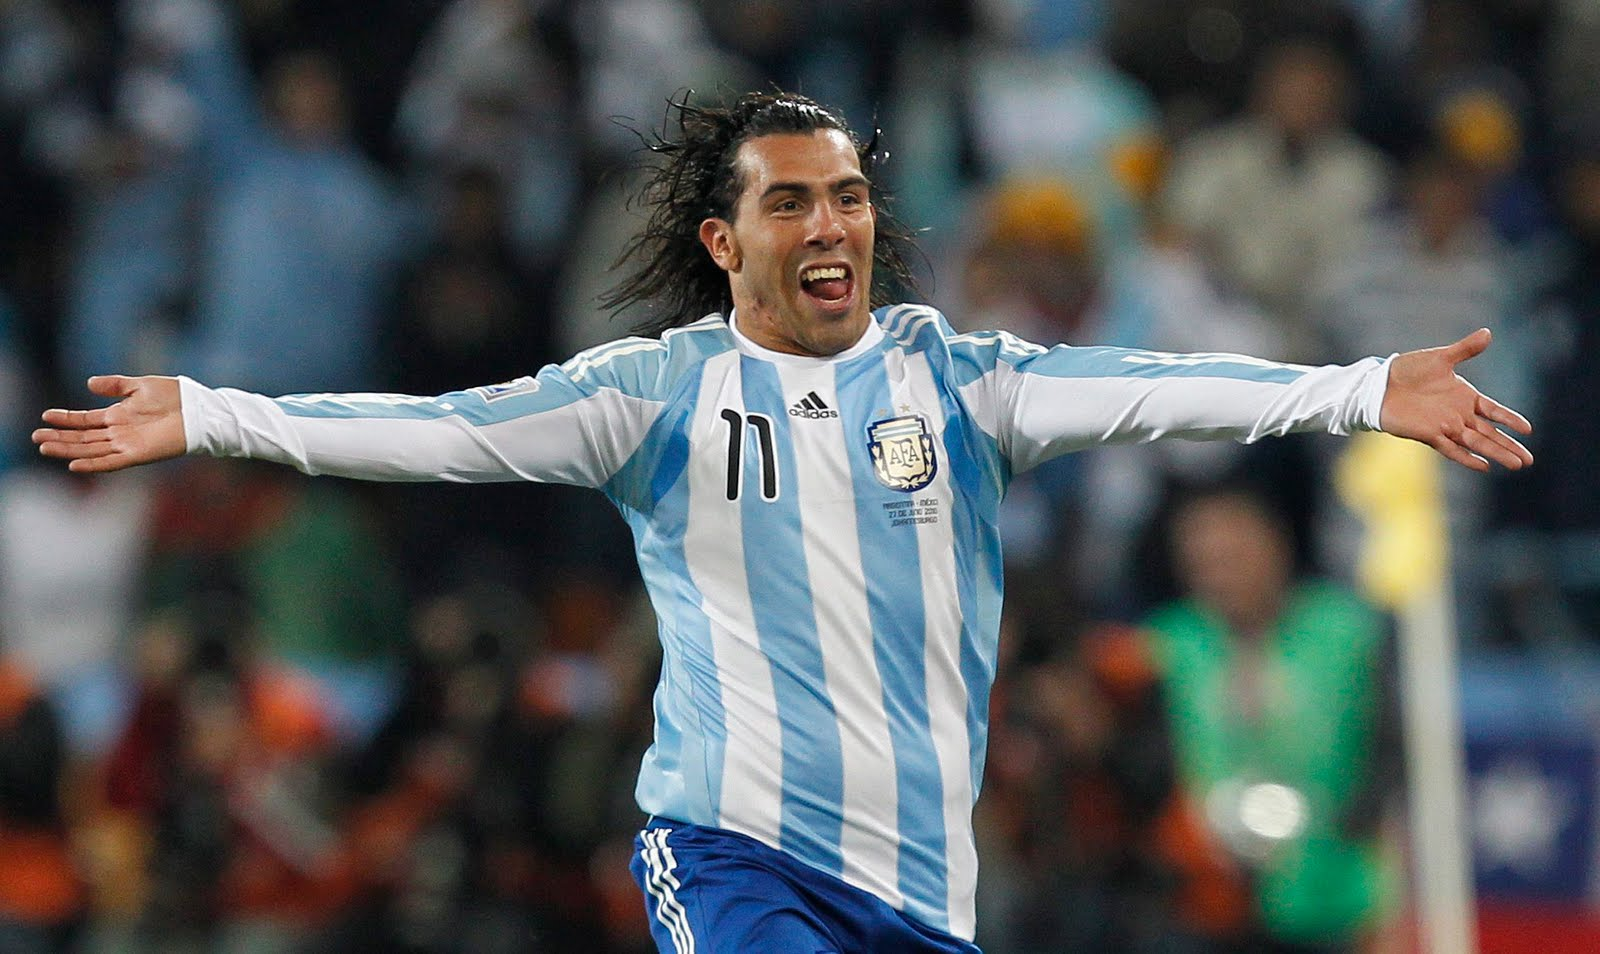 Scare for Eagles? Tevez aims to secure Argentina's World Cup spot